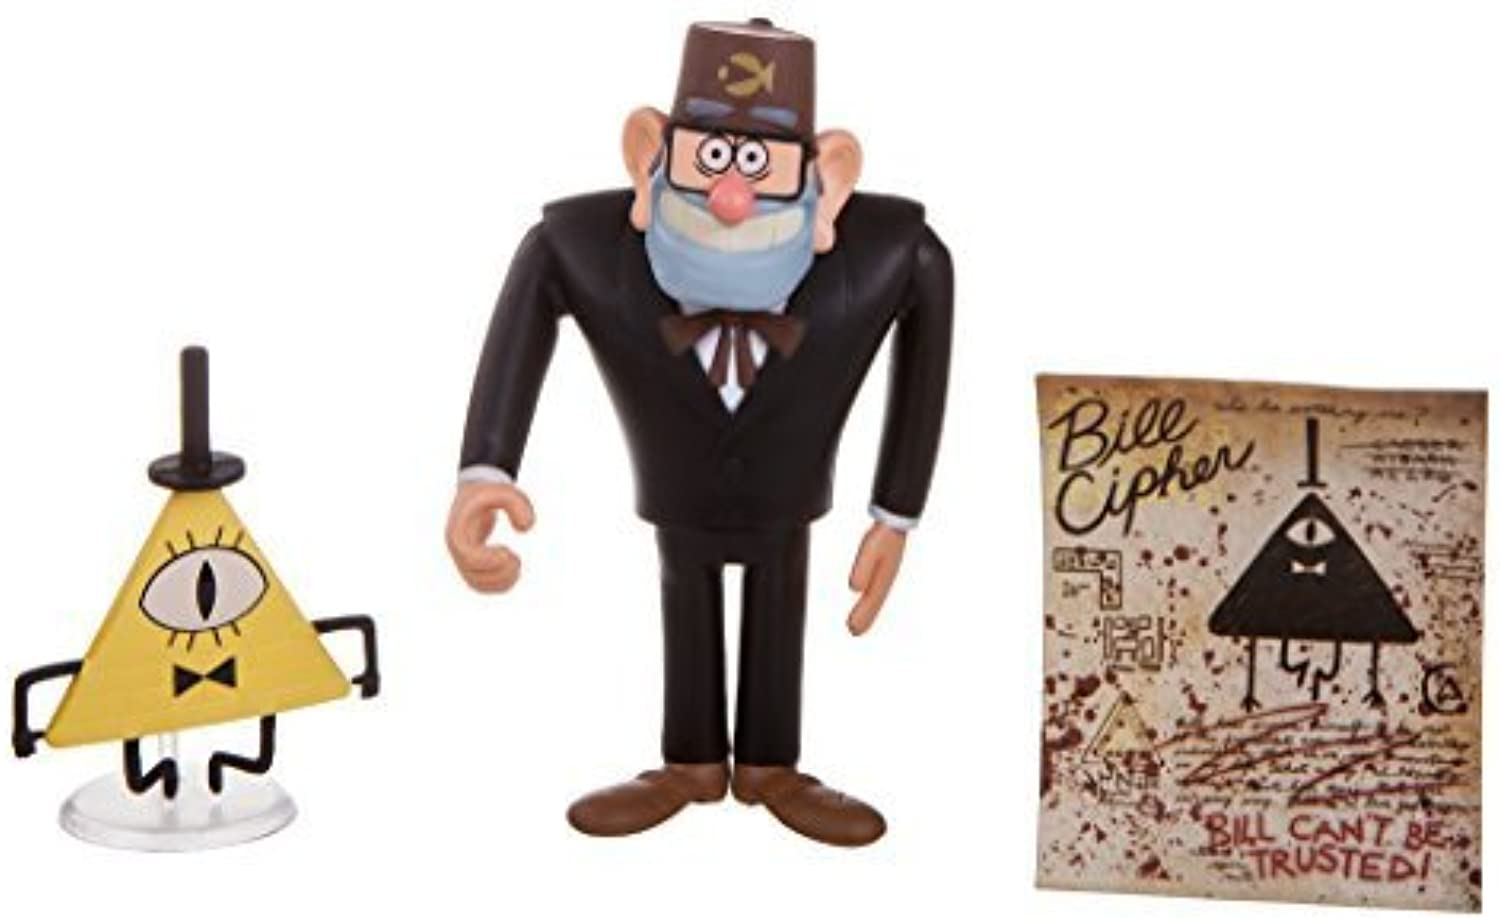 Gravity Falls Grunkle Stan with Bill Cipher by Gravity falls